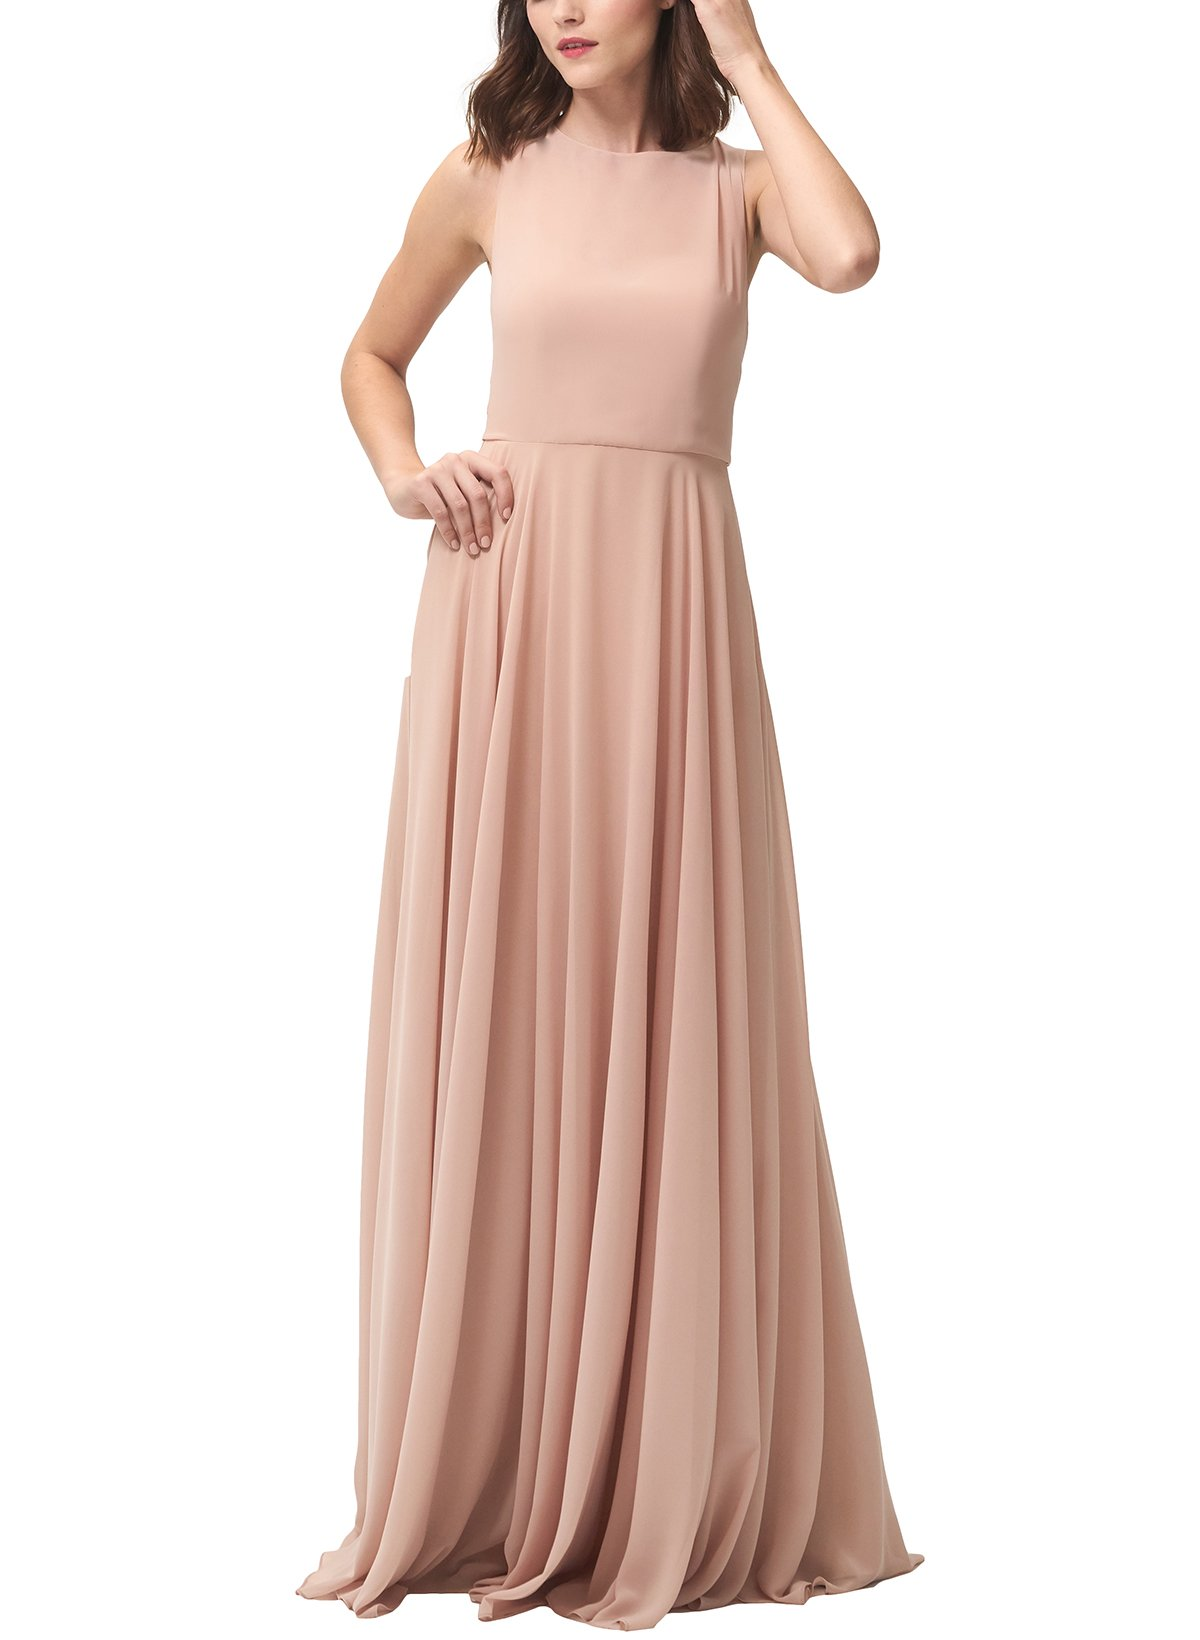 Jenny yoo elizabeth bridesmaid dress bridesmaid dress brideside jenny yoo elizabeth bridesmaid dress ombrellifo Images